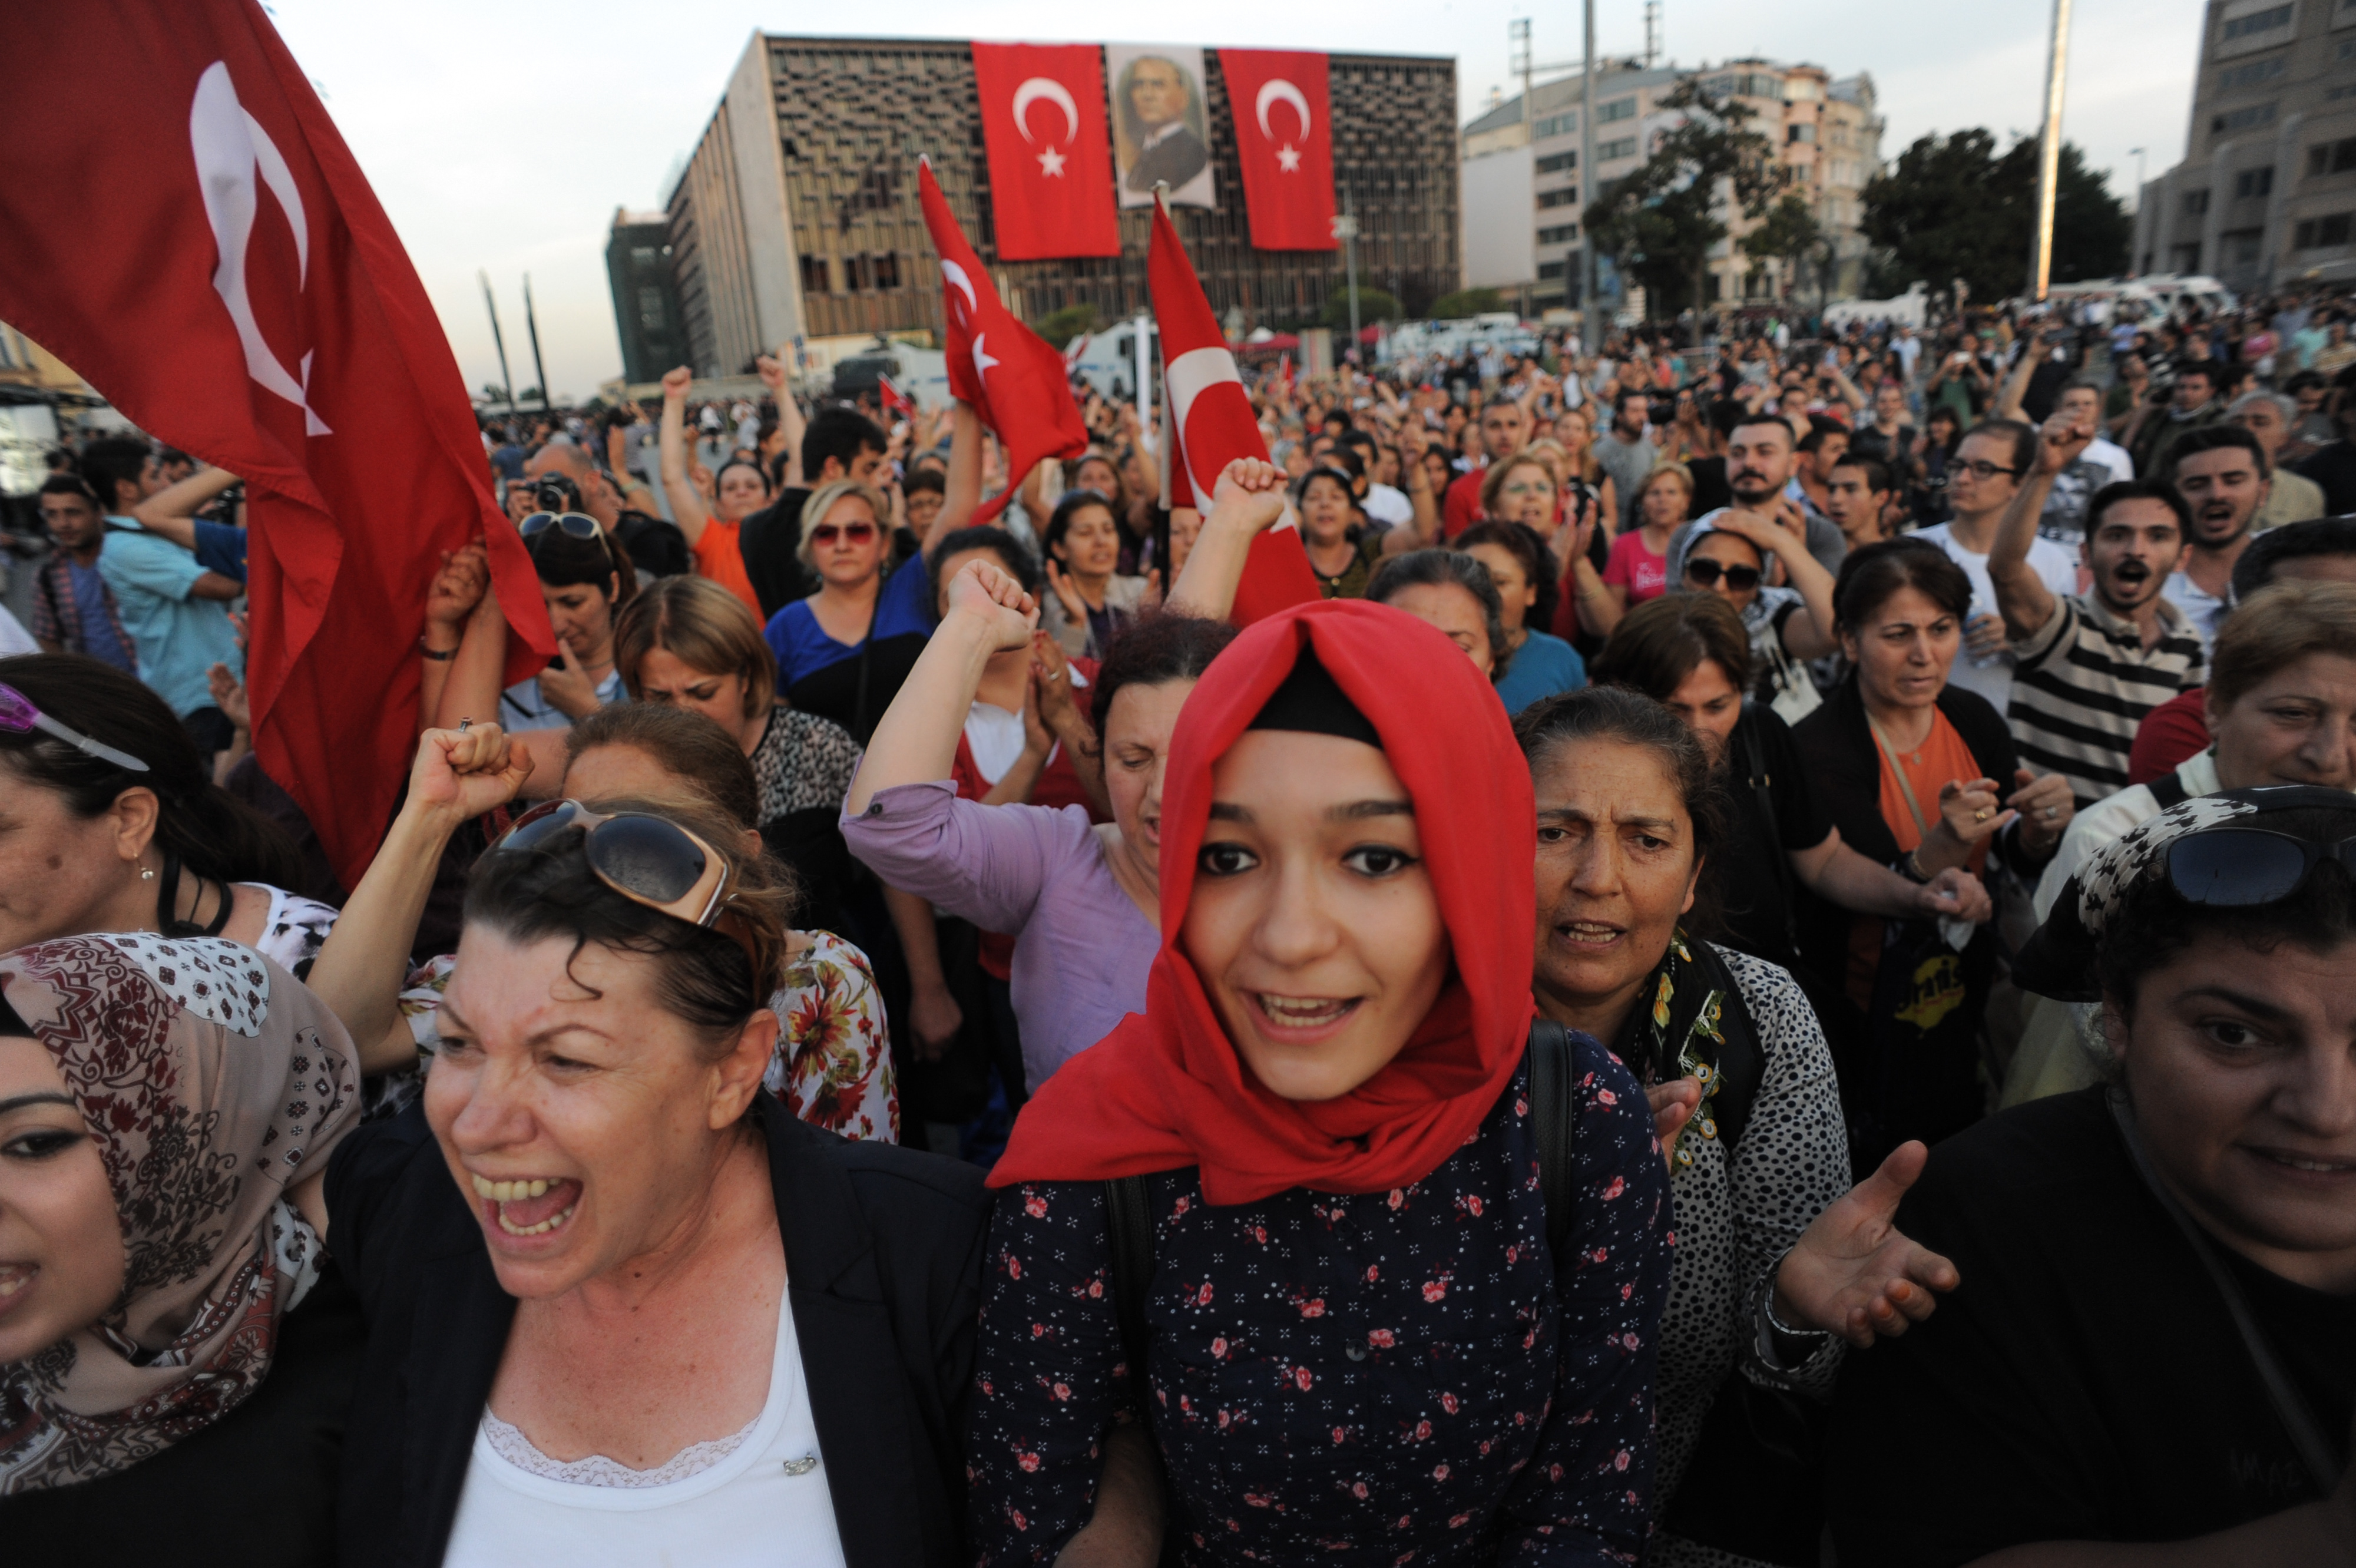 https://upload.wikimedia.org/wikipedia/commons/3/34/Taksim_square_peaceful_protests._Events_of_June_16,_2013-2.jpg